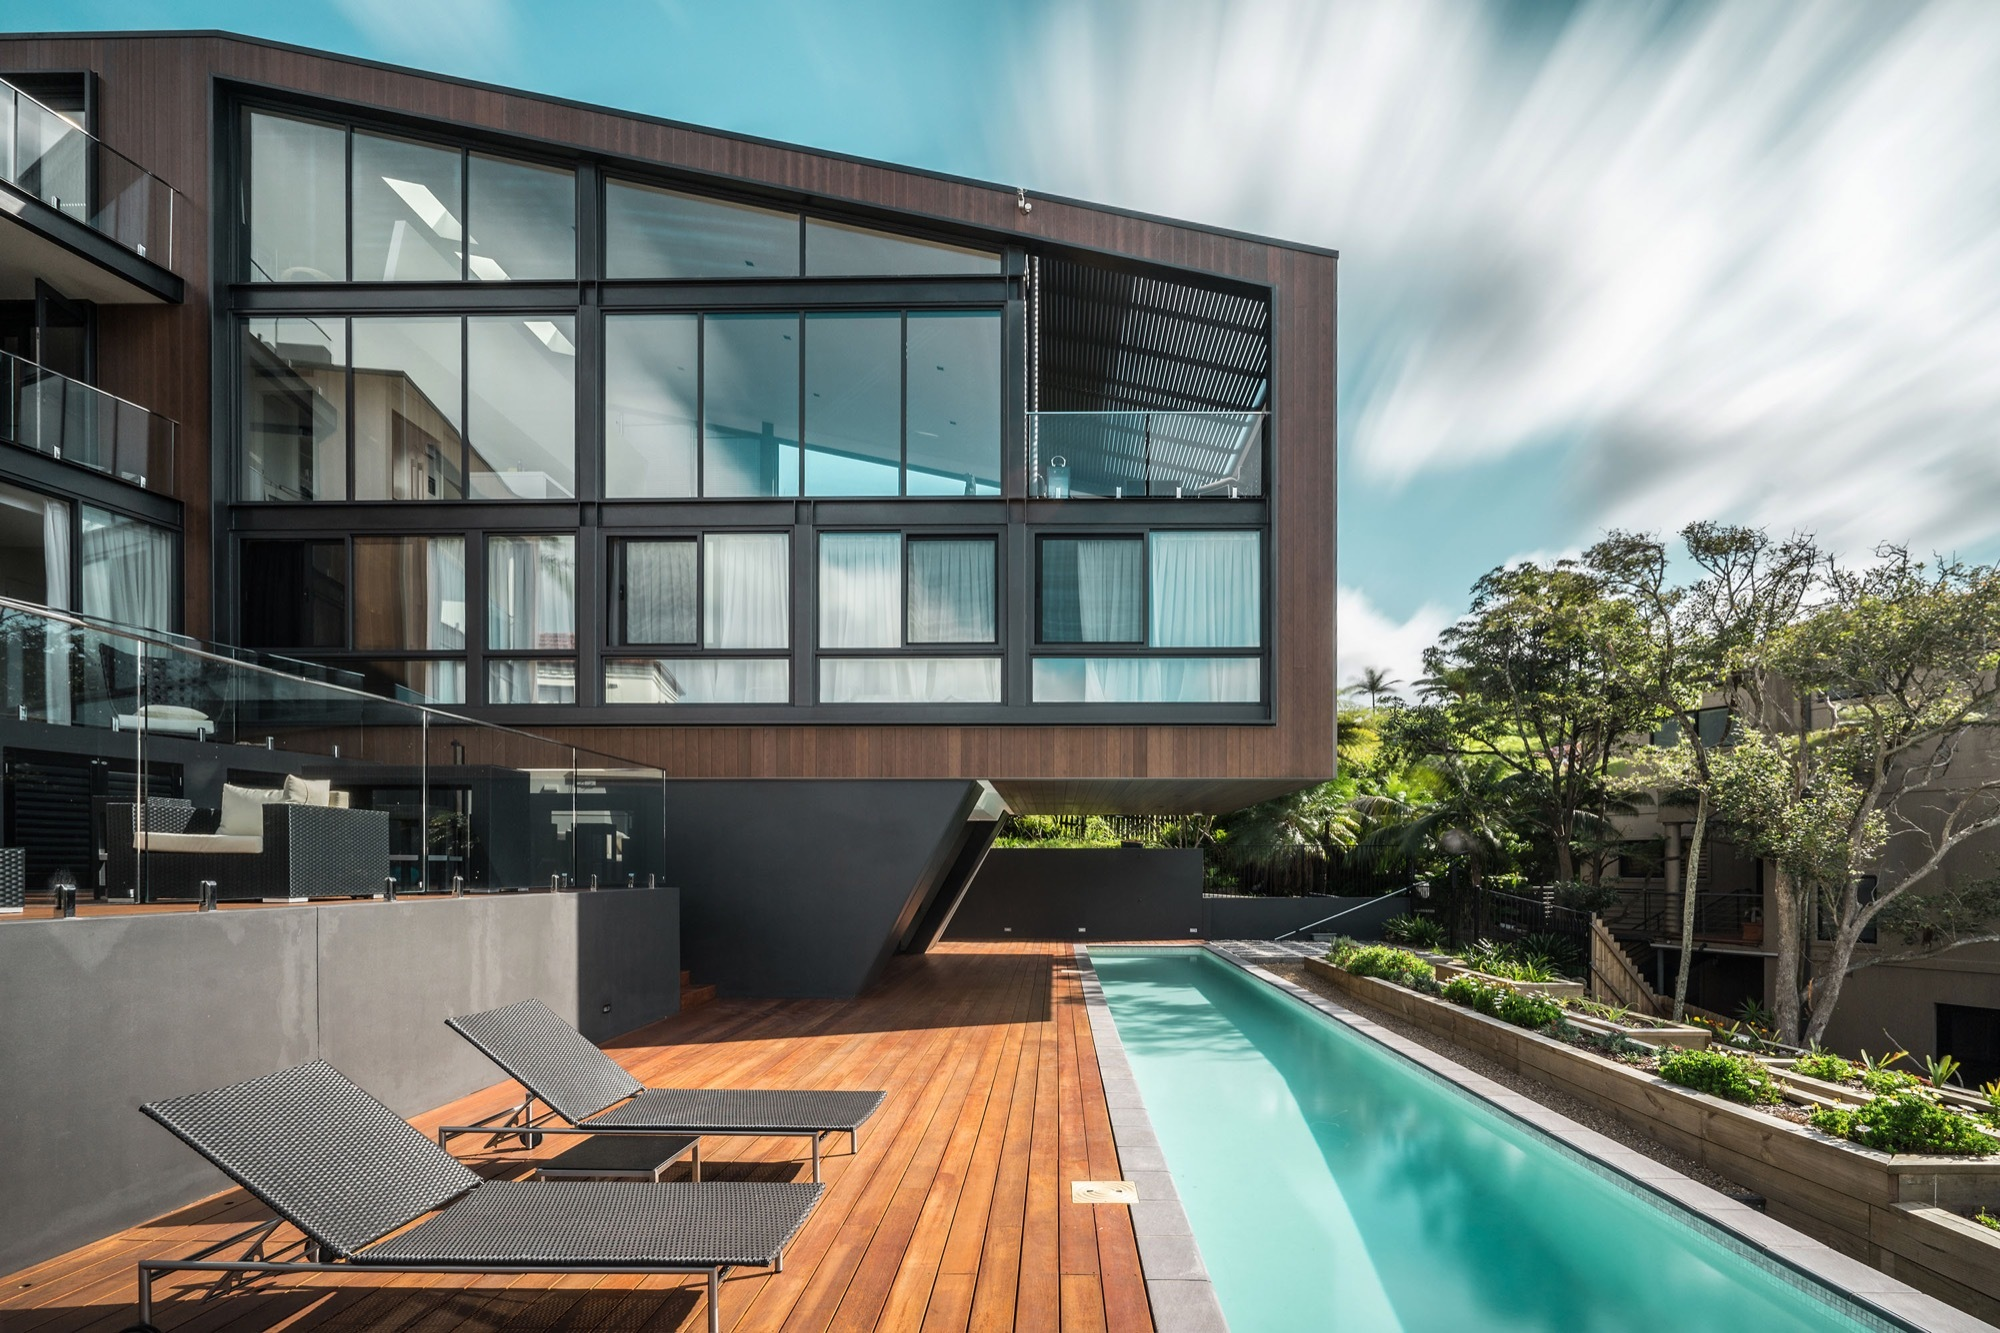 Seaforth house iapa design consultant archdaily for Design consultant